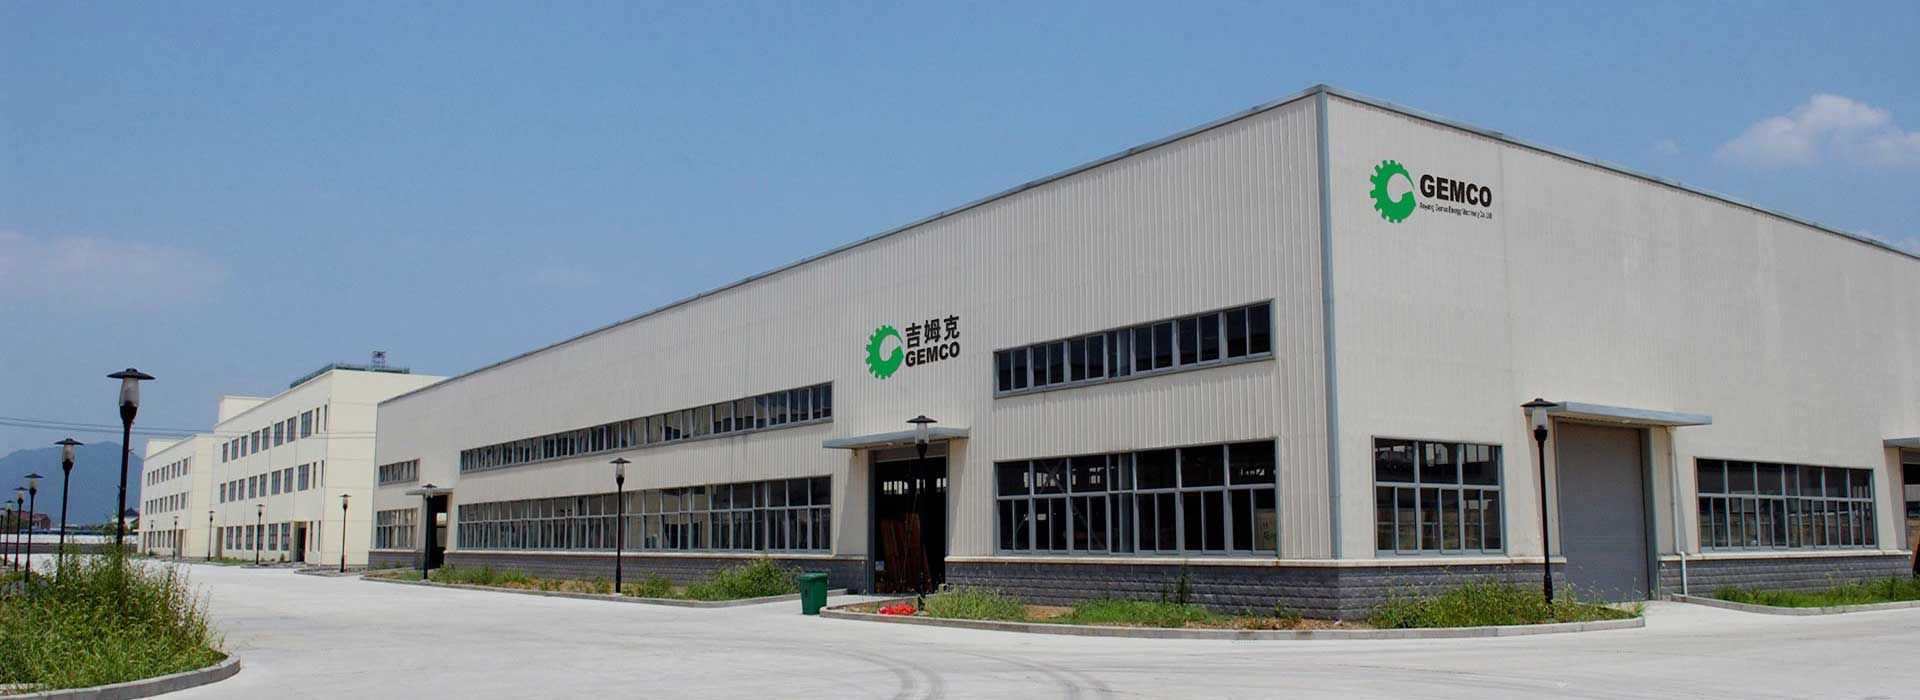 Welcome To GEMCO